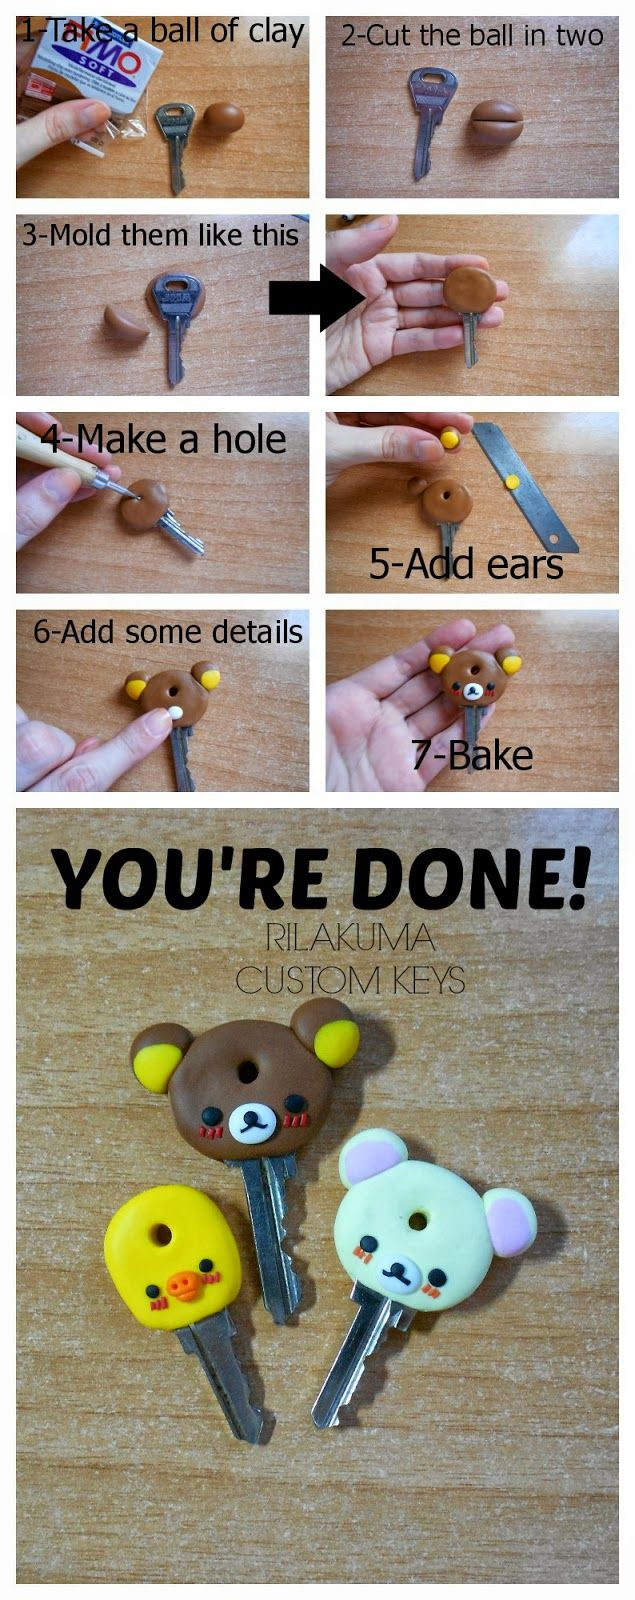 DIY Rilakkuma polymer clay custom keys tutorial                                                                                                                                                      More